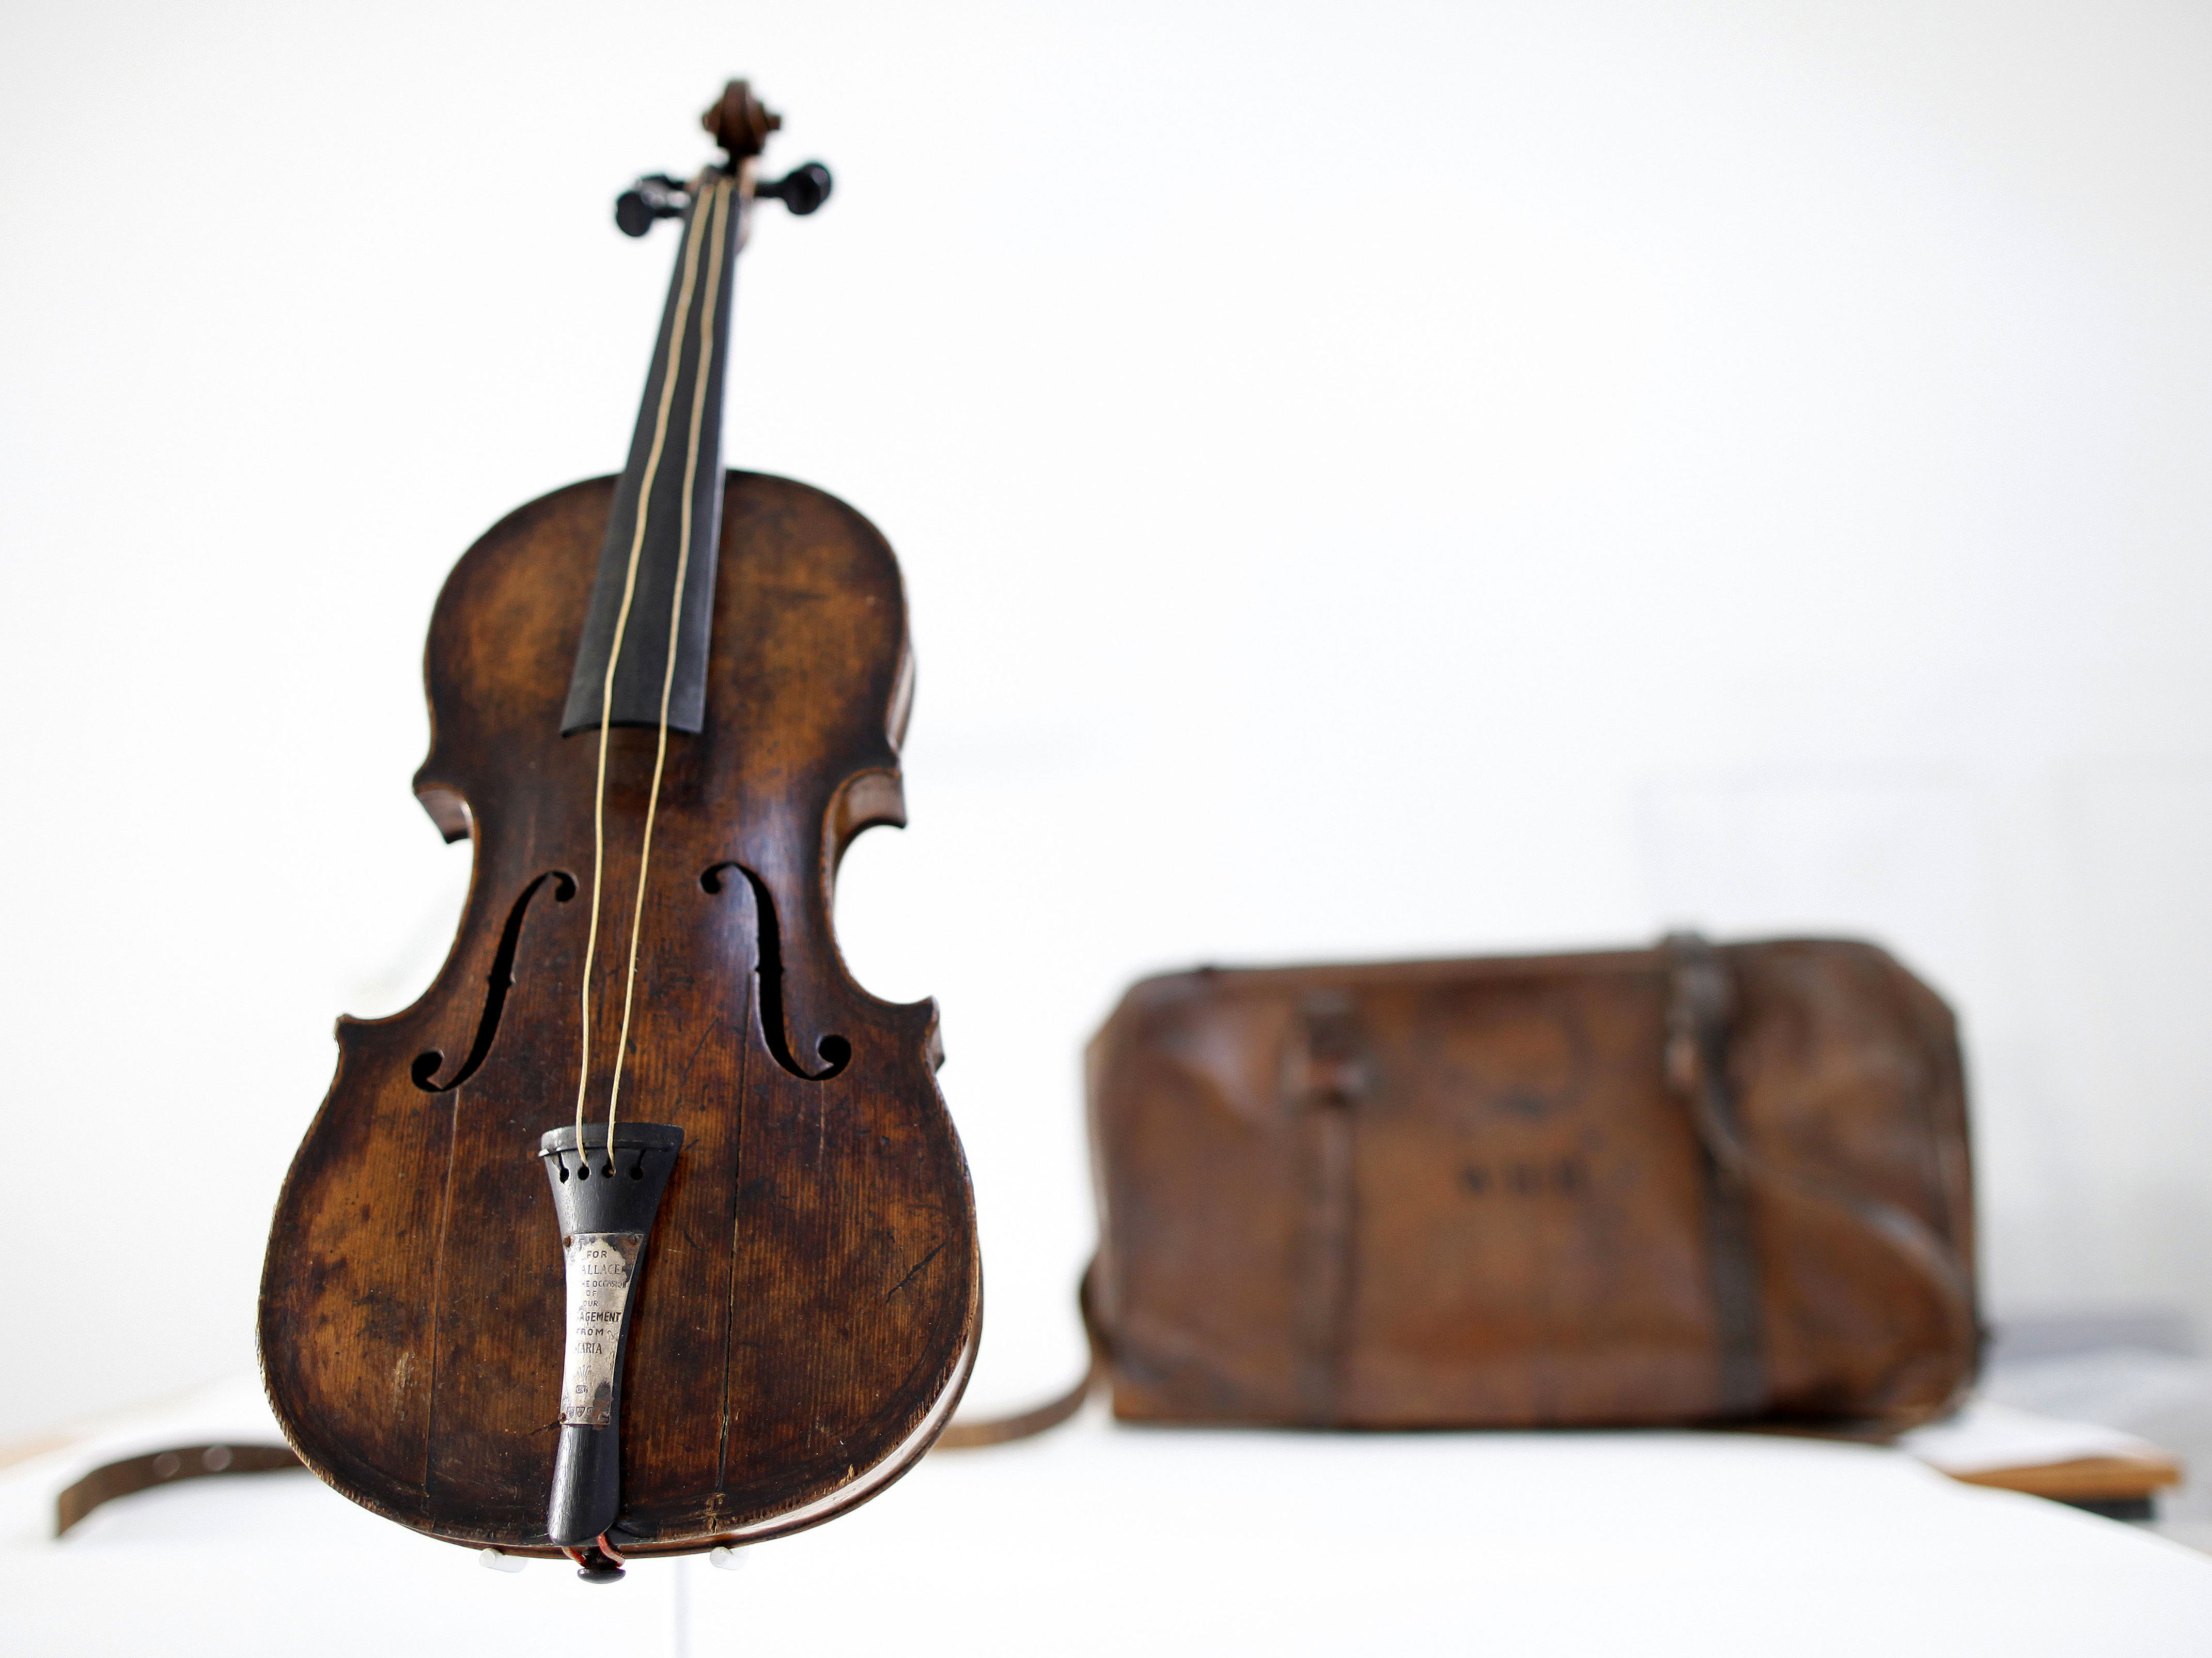 Violin Said To Have Been On The Titanic Sells For $1.6M